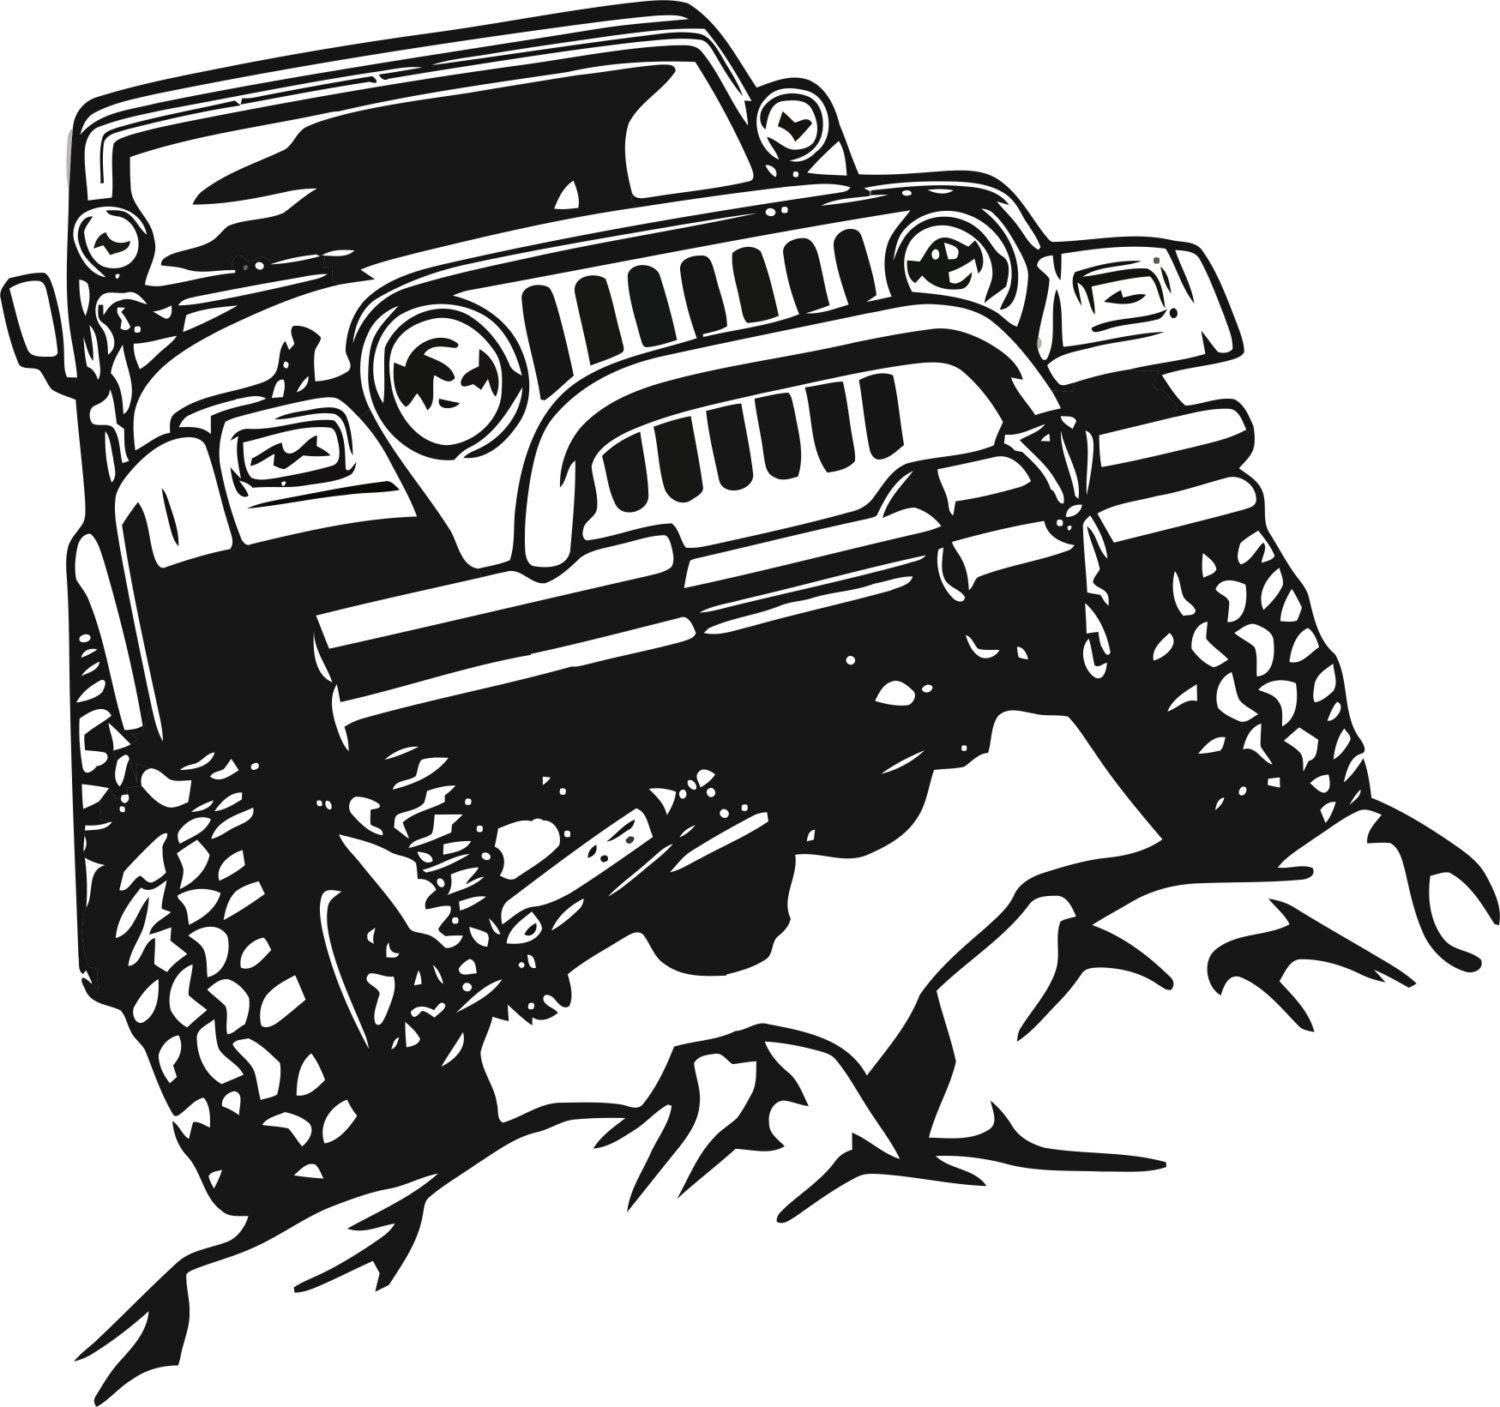 Jeep Decal Garage Home Decor Wall Hanging Graphic Design